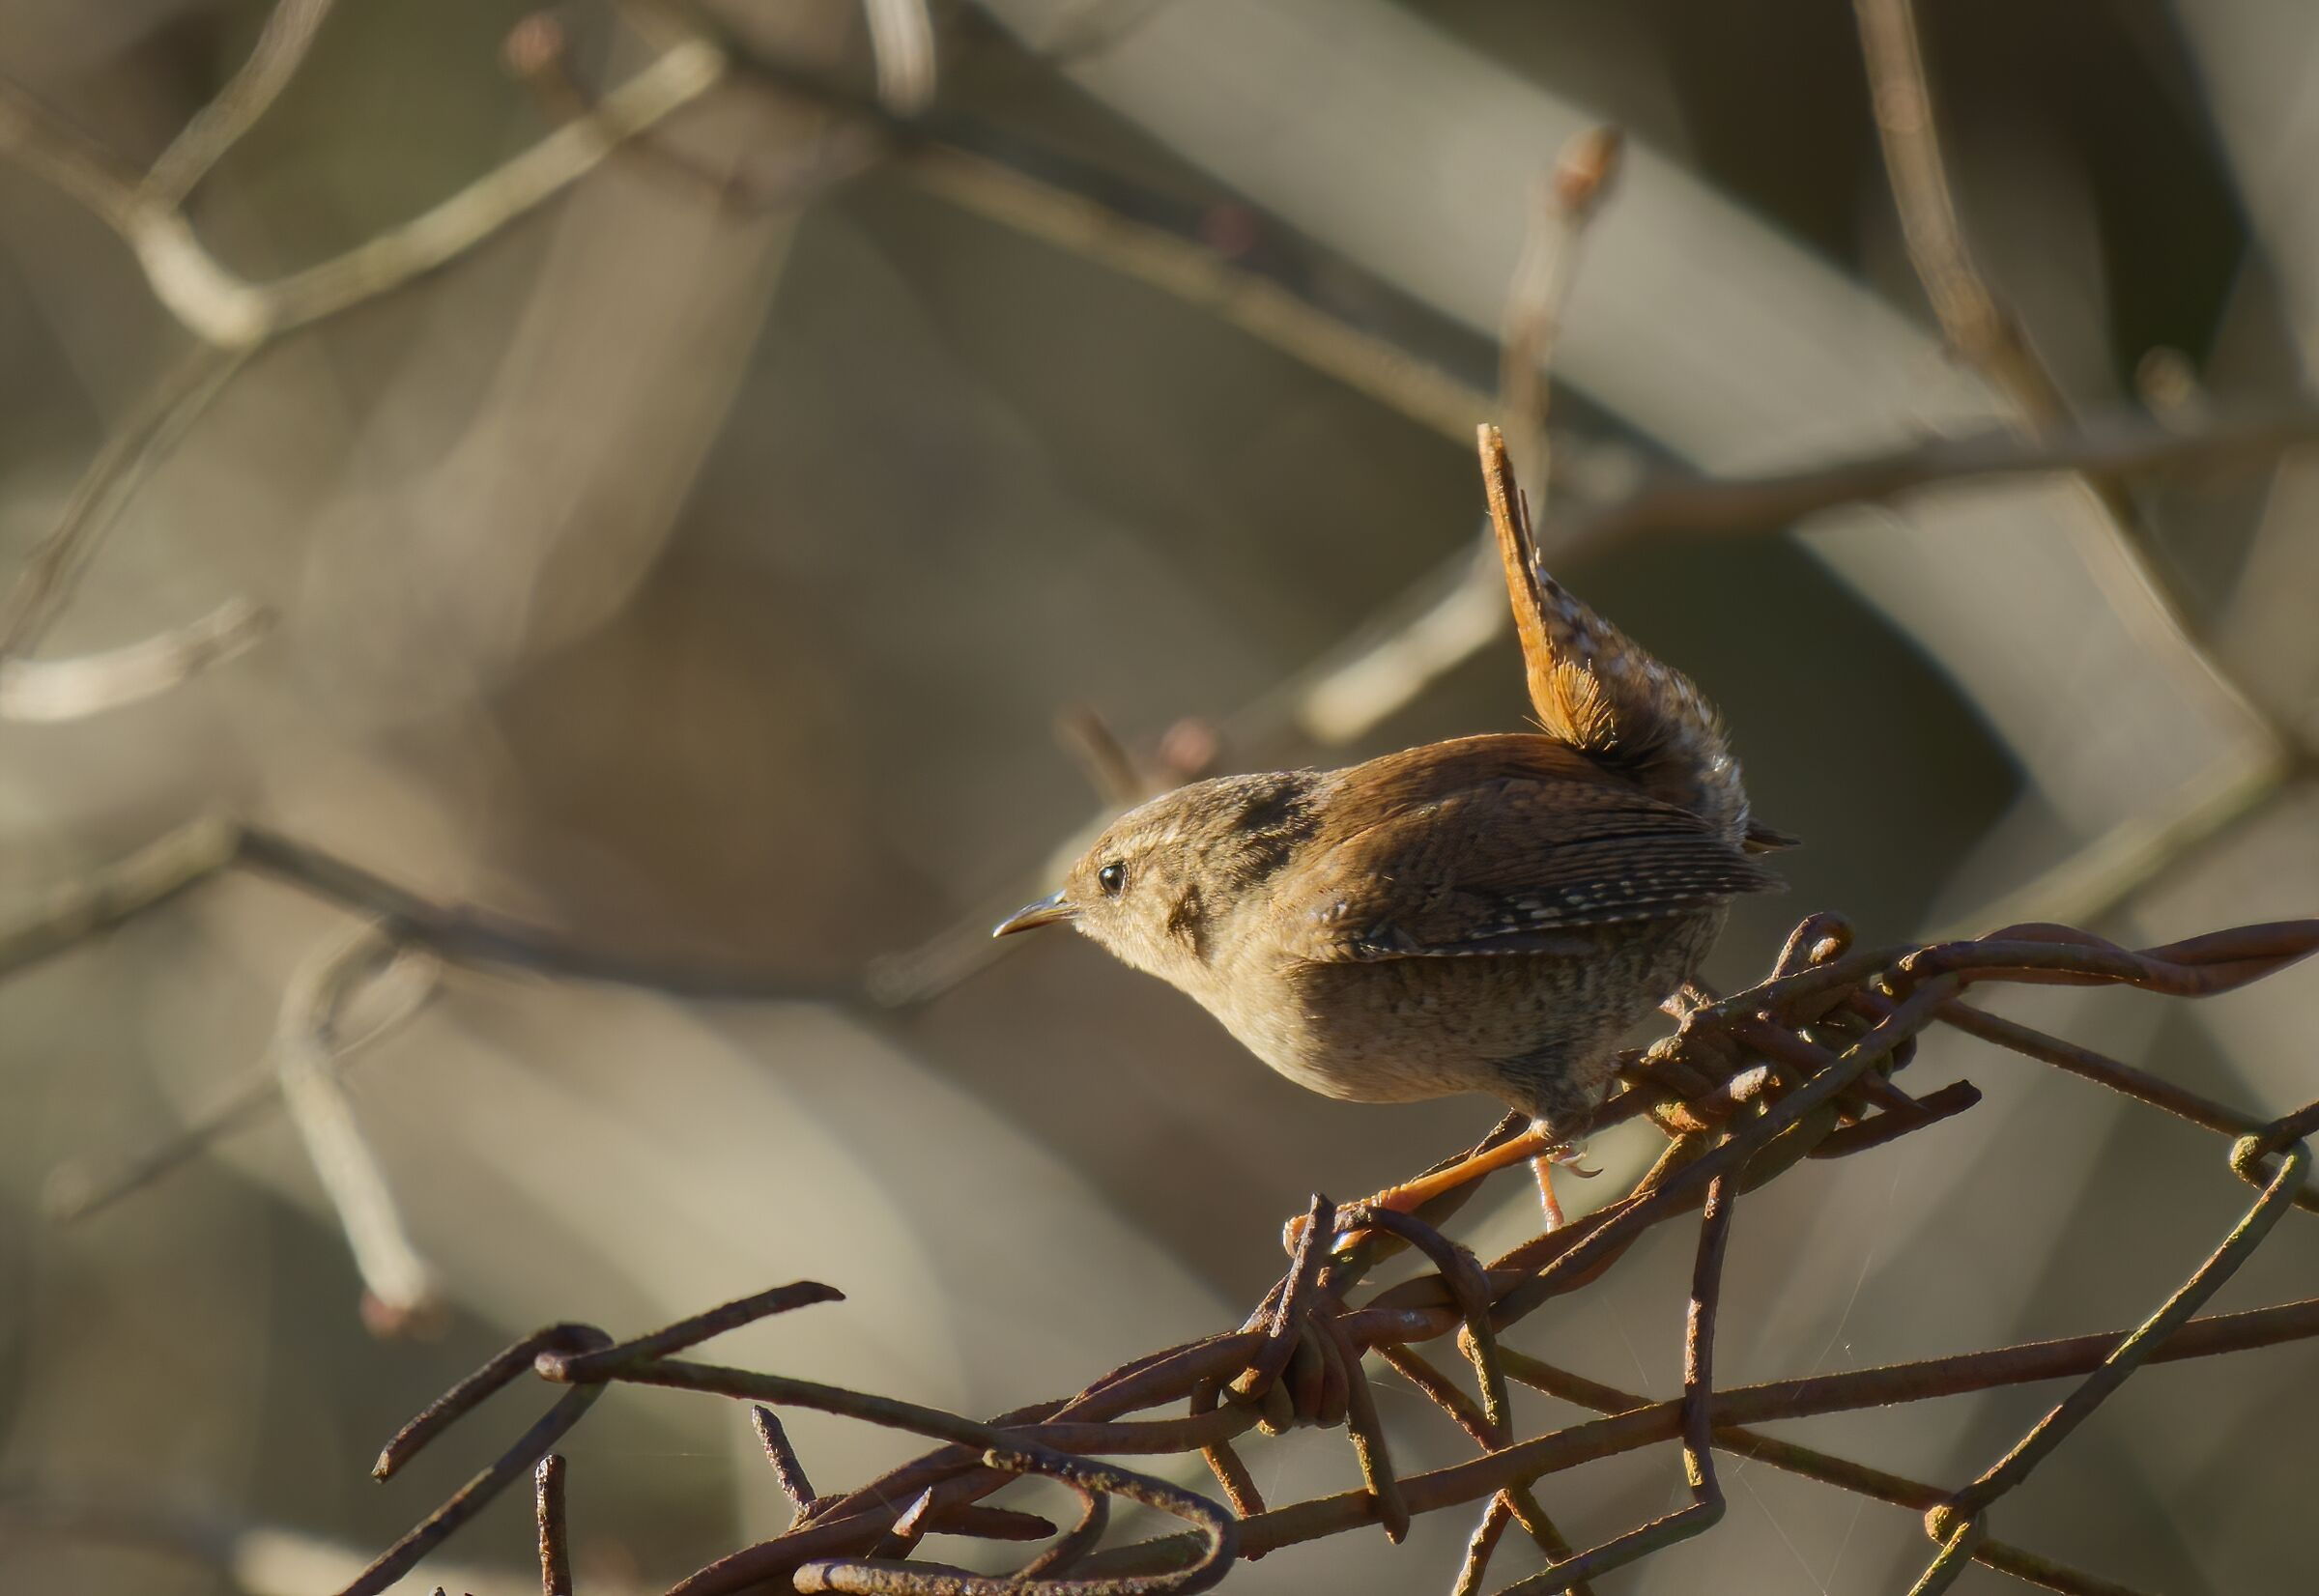 The wren in the reticulated...